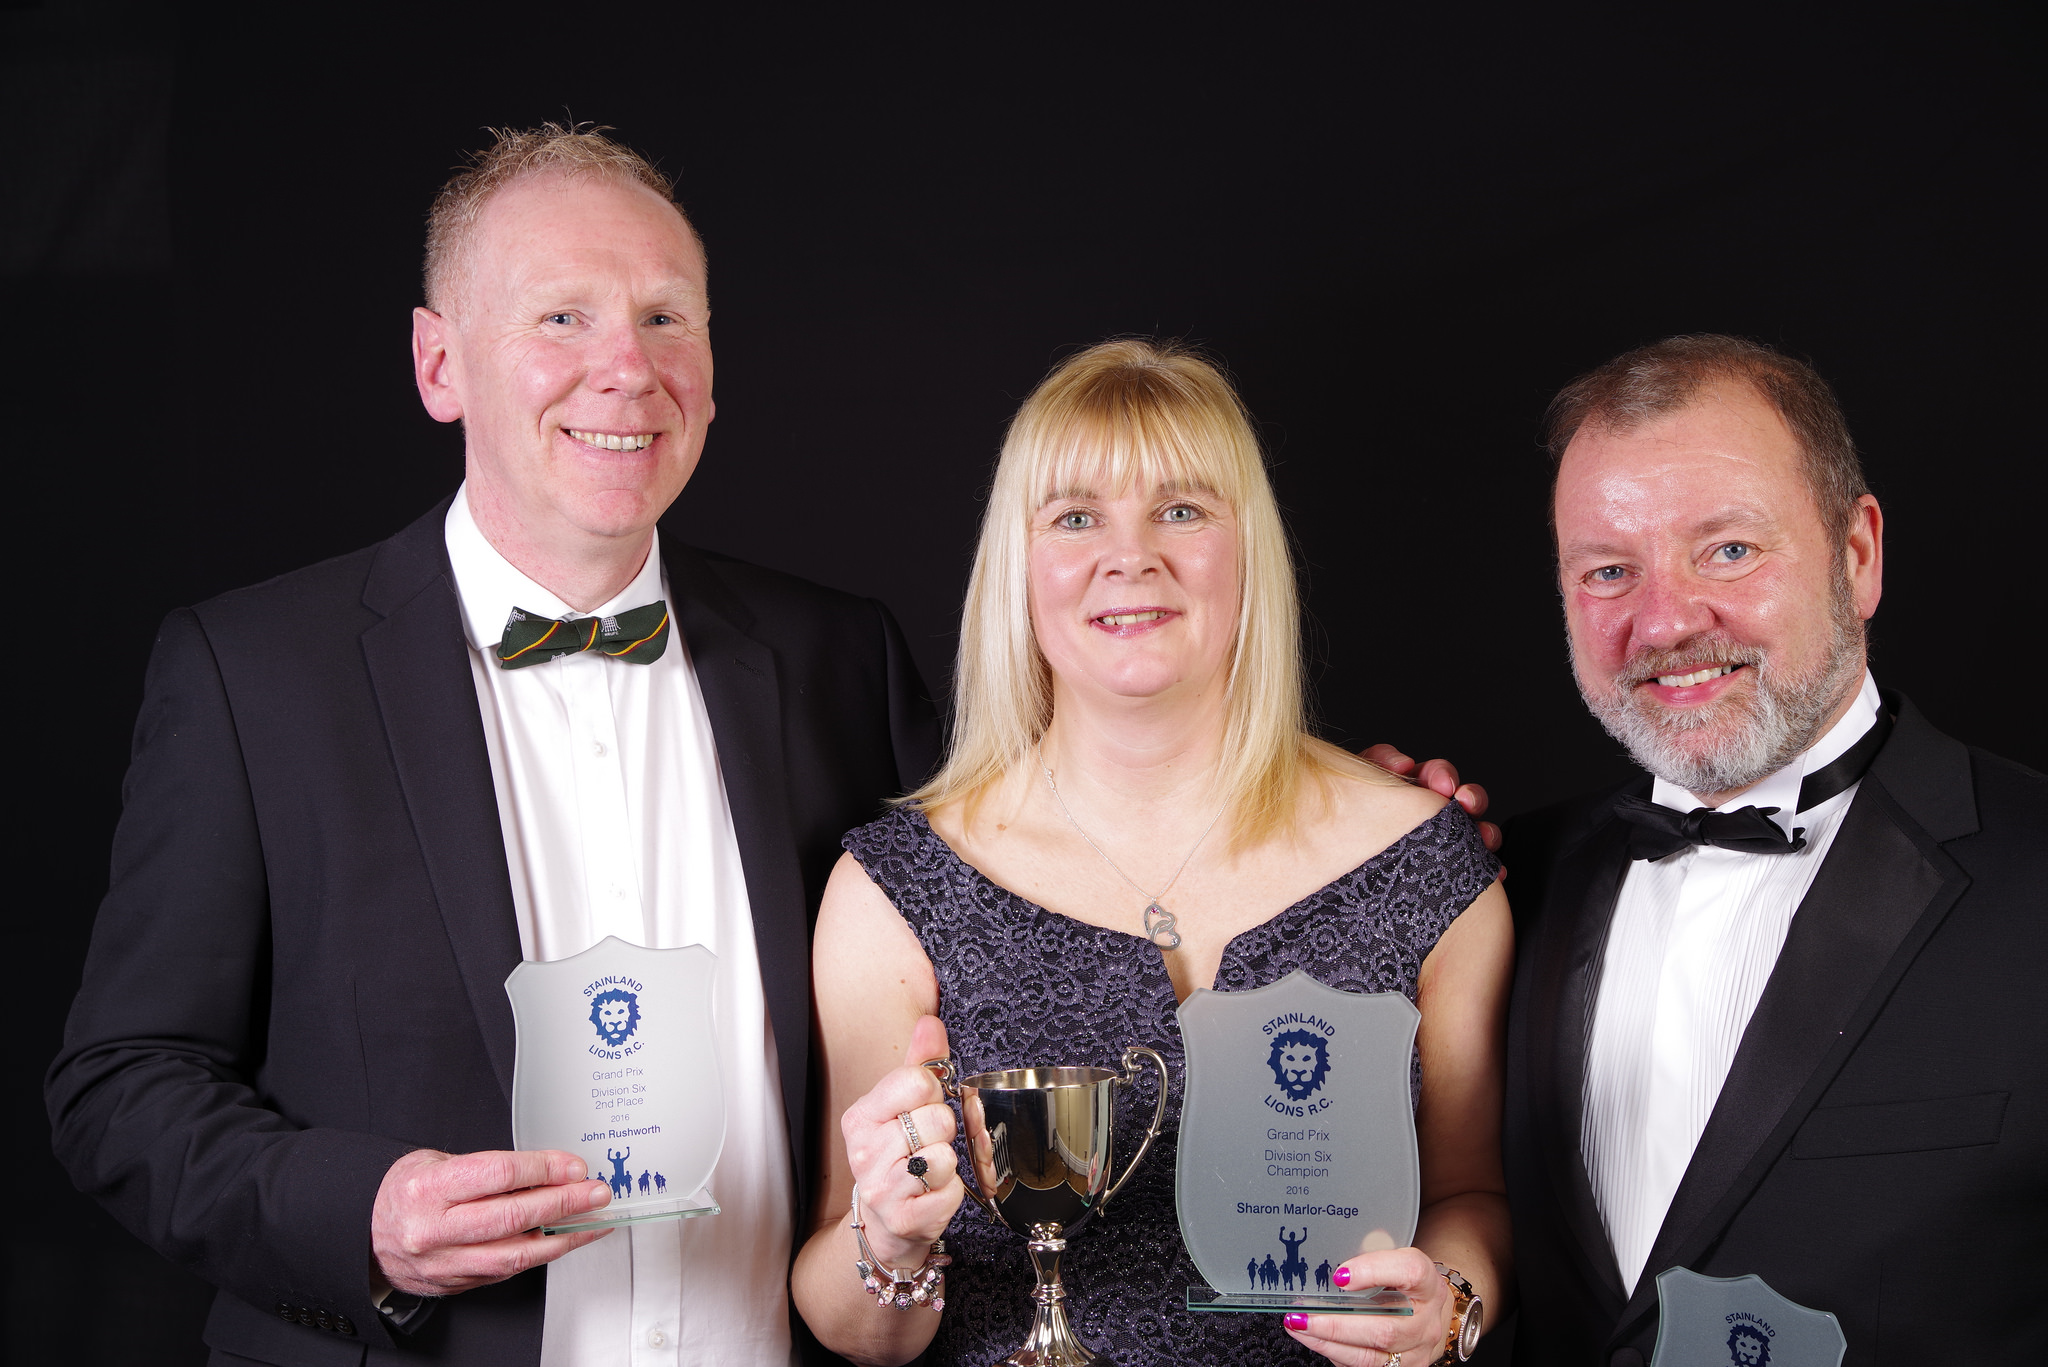 Left to Right: John Rushworth (2nd place), Sharon Marlor-Gage (1st place), Graham Robertshaw (3rd place)